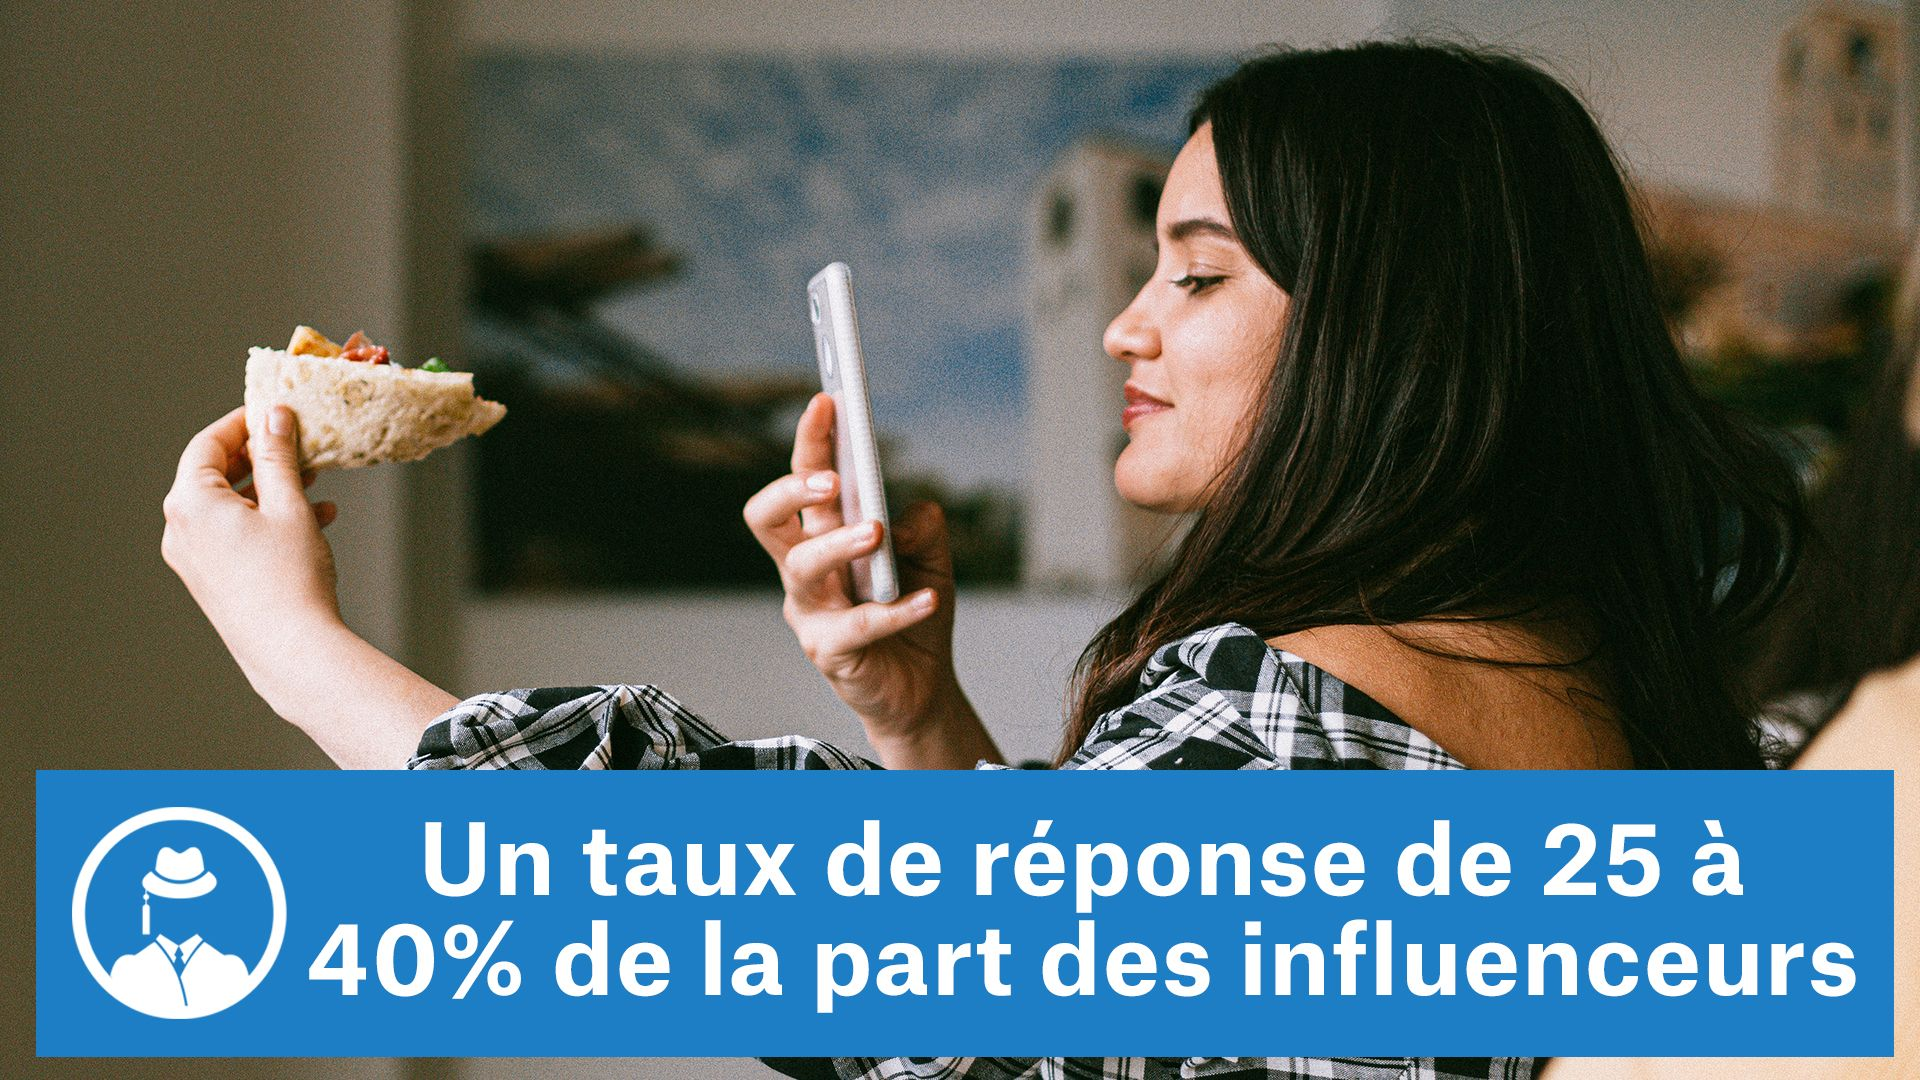 Un taux de réponse de 25 à 40% de la part des influenceurs #GrowthHacking #WebMarketing #FormationGrowthHacking #CentreDeFormationFrance #TunnelAARRR #AARRR #SocialMedia #CommunityManagement #SEO